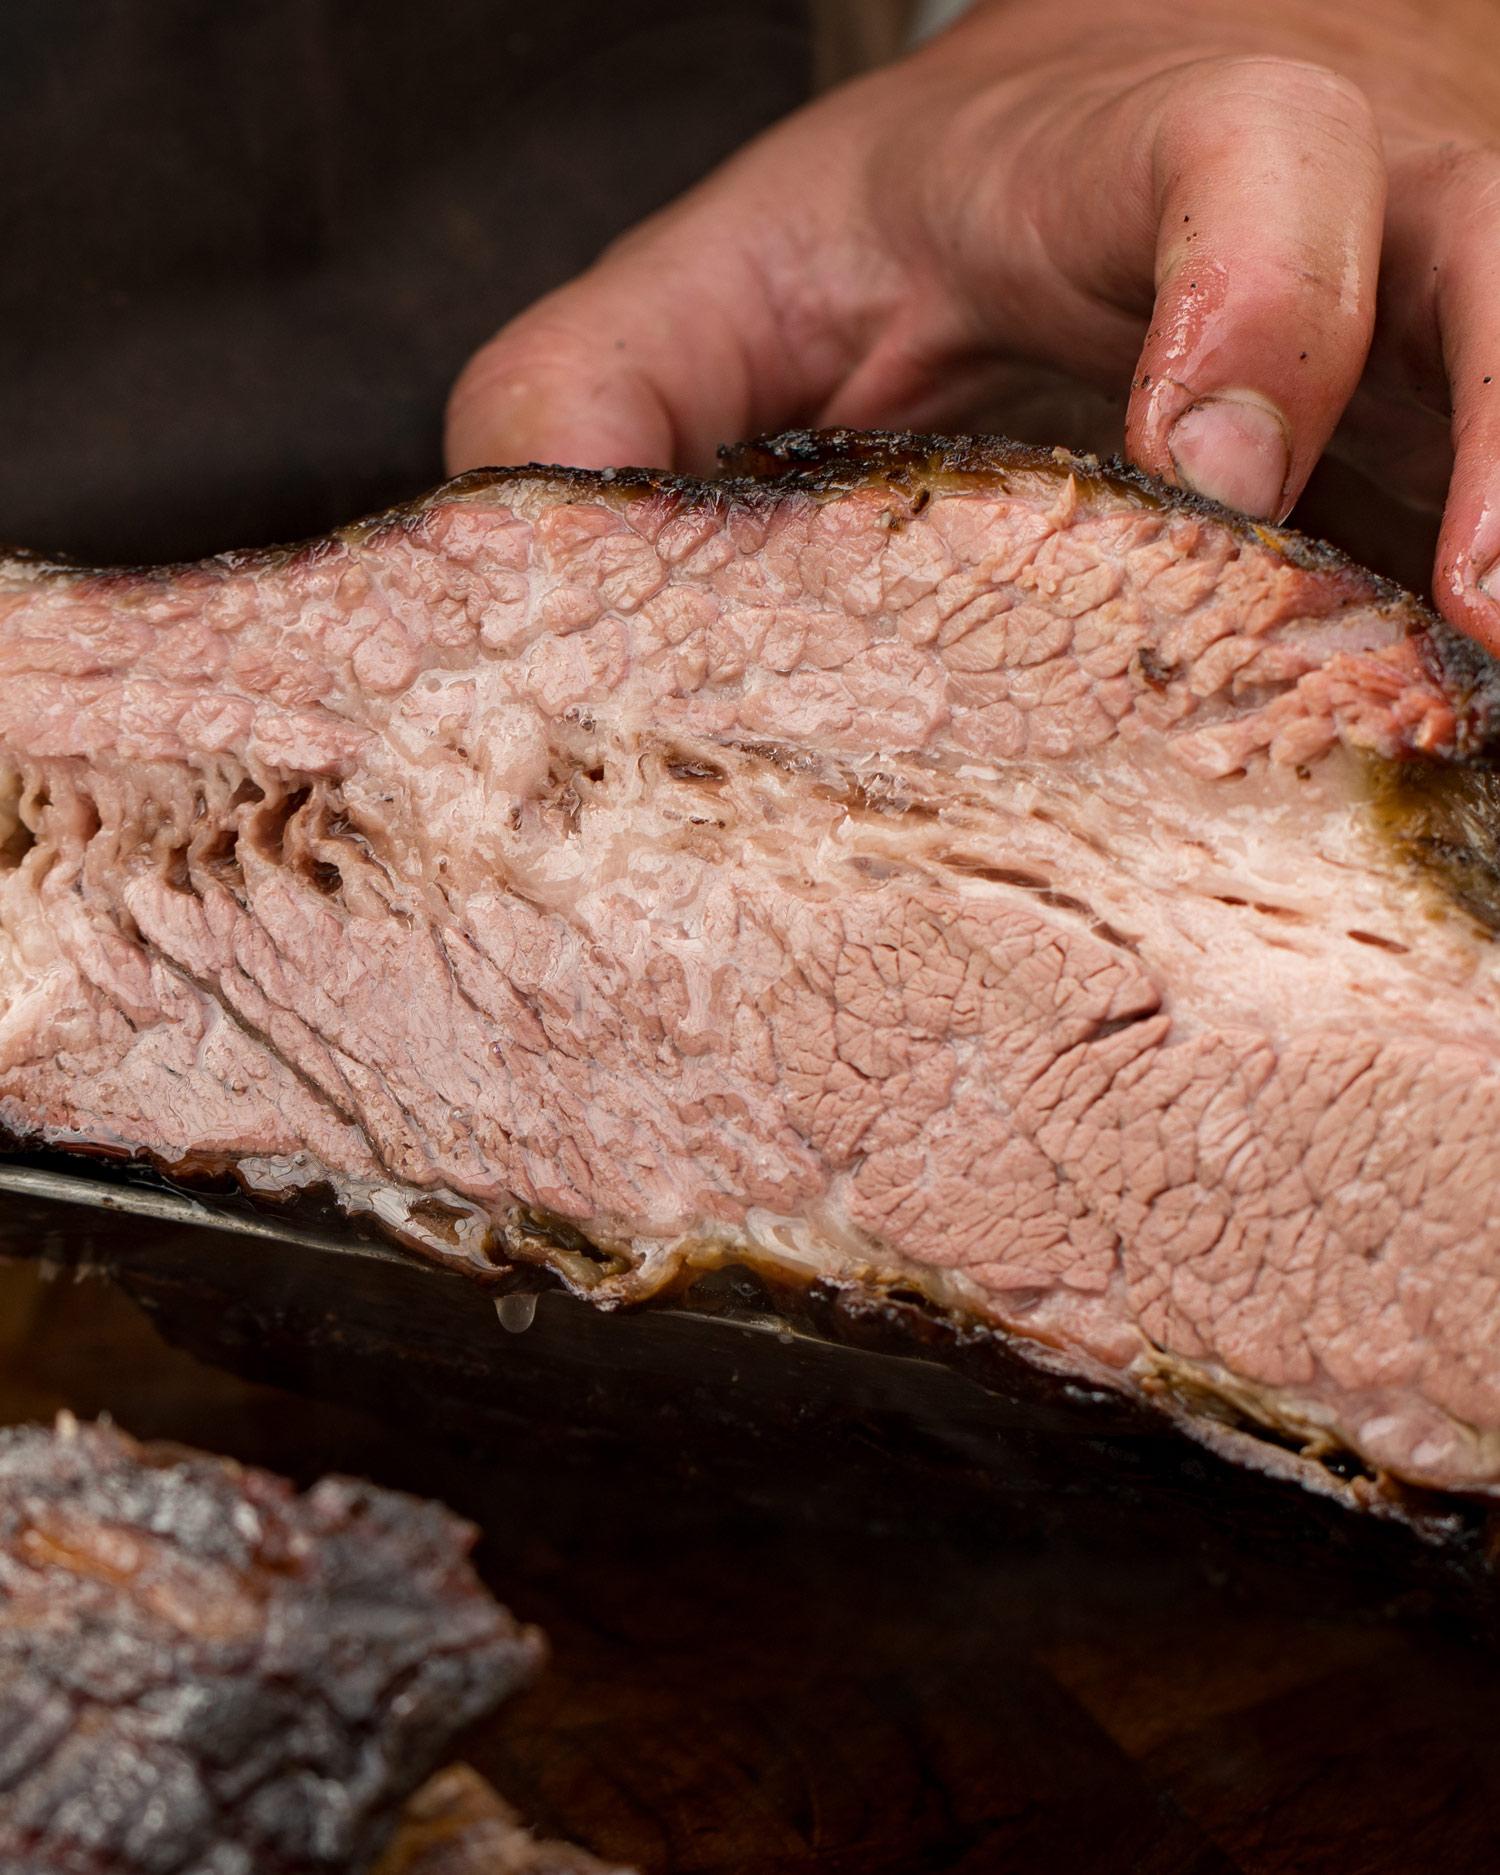 use a cooked brisket